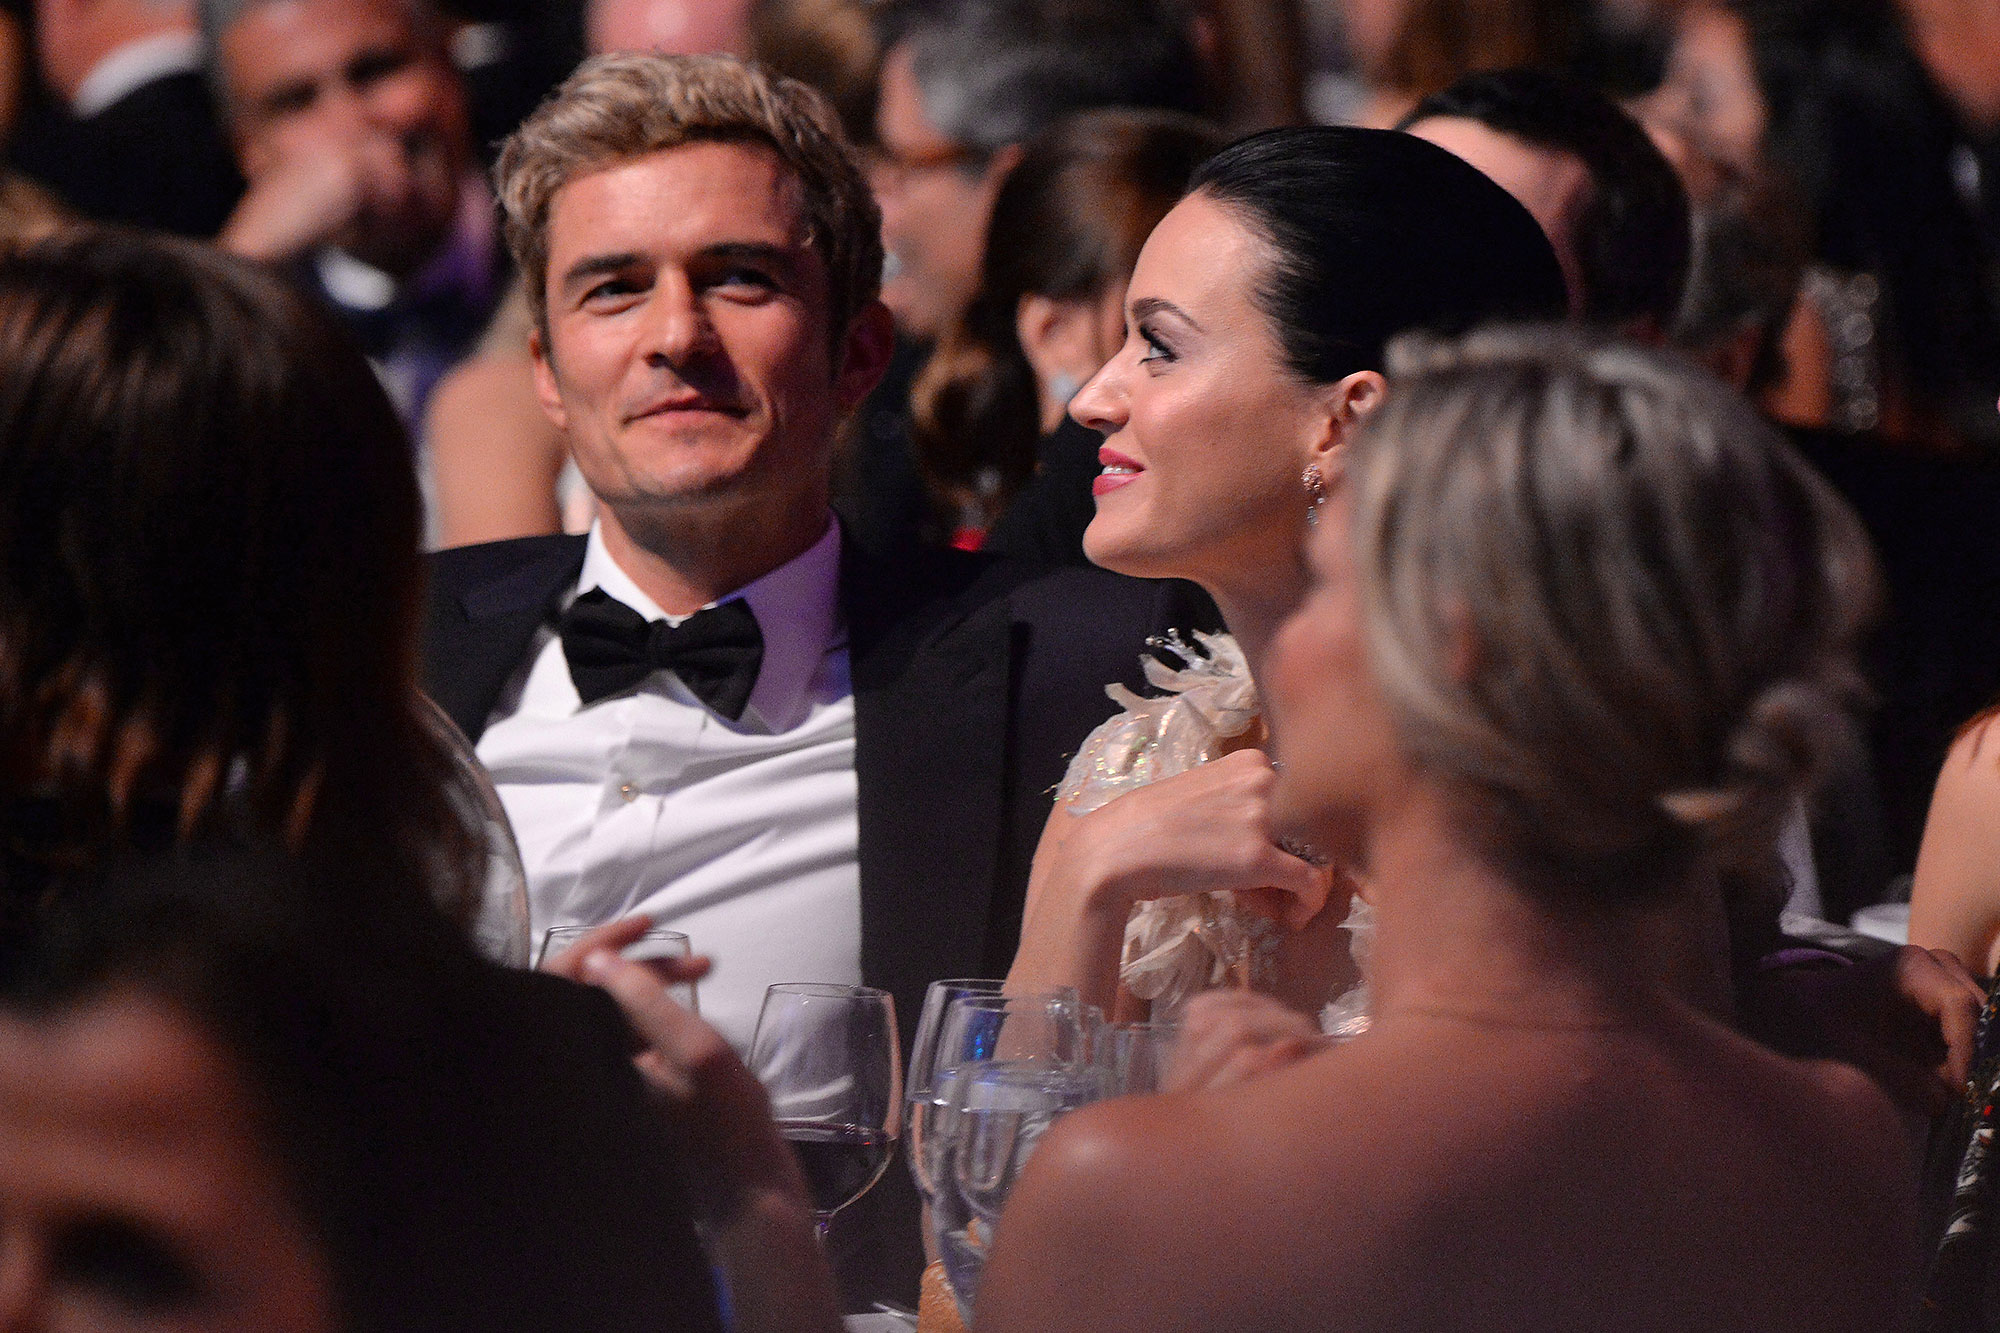 NEW YORK, NY - NOVEMBER 29: Orlando Bloom, Katy Perry, and Keith Hudson attend the 12th annual UNICEF Snowflake Ball at Cipriani Wall Street on November 29, 2016 in New York City. (Photo by Kevin Mazur/Getty Images for UNICEF )